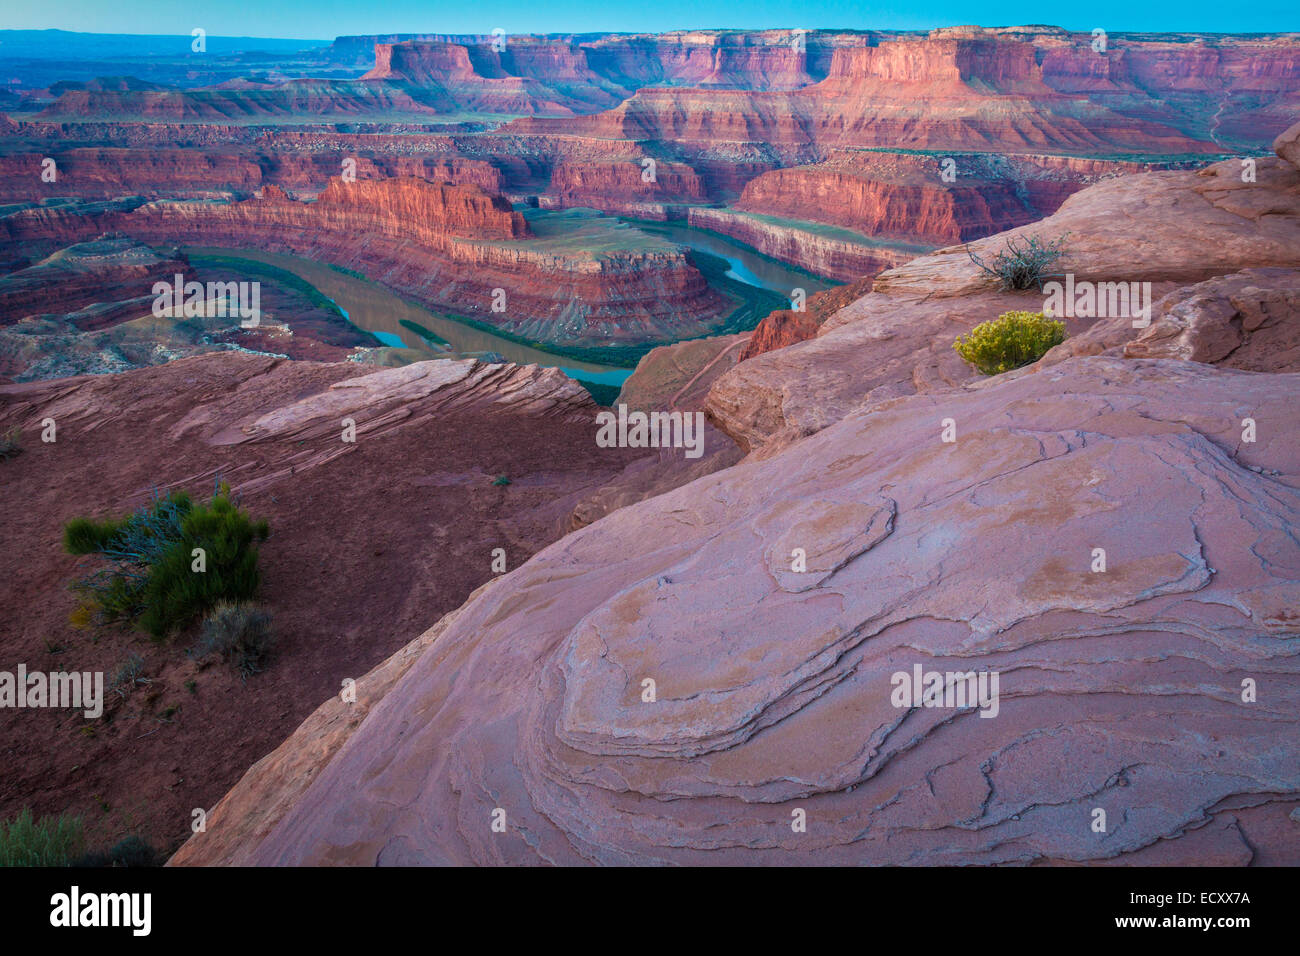 Dead Horse Point State Park is a state park of Utah in the United States, and its dramatic overlook of the Colorado - Stock Image